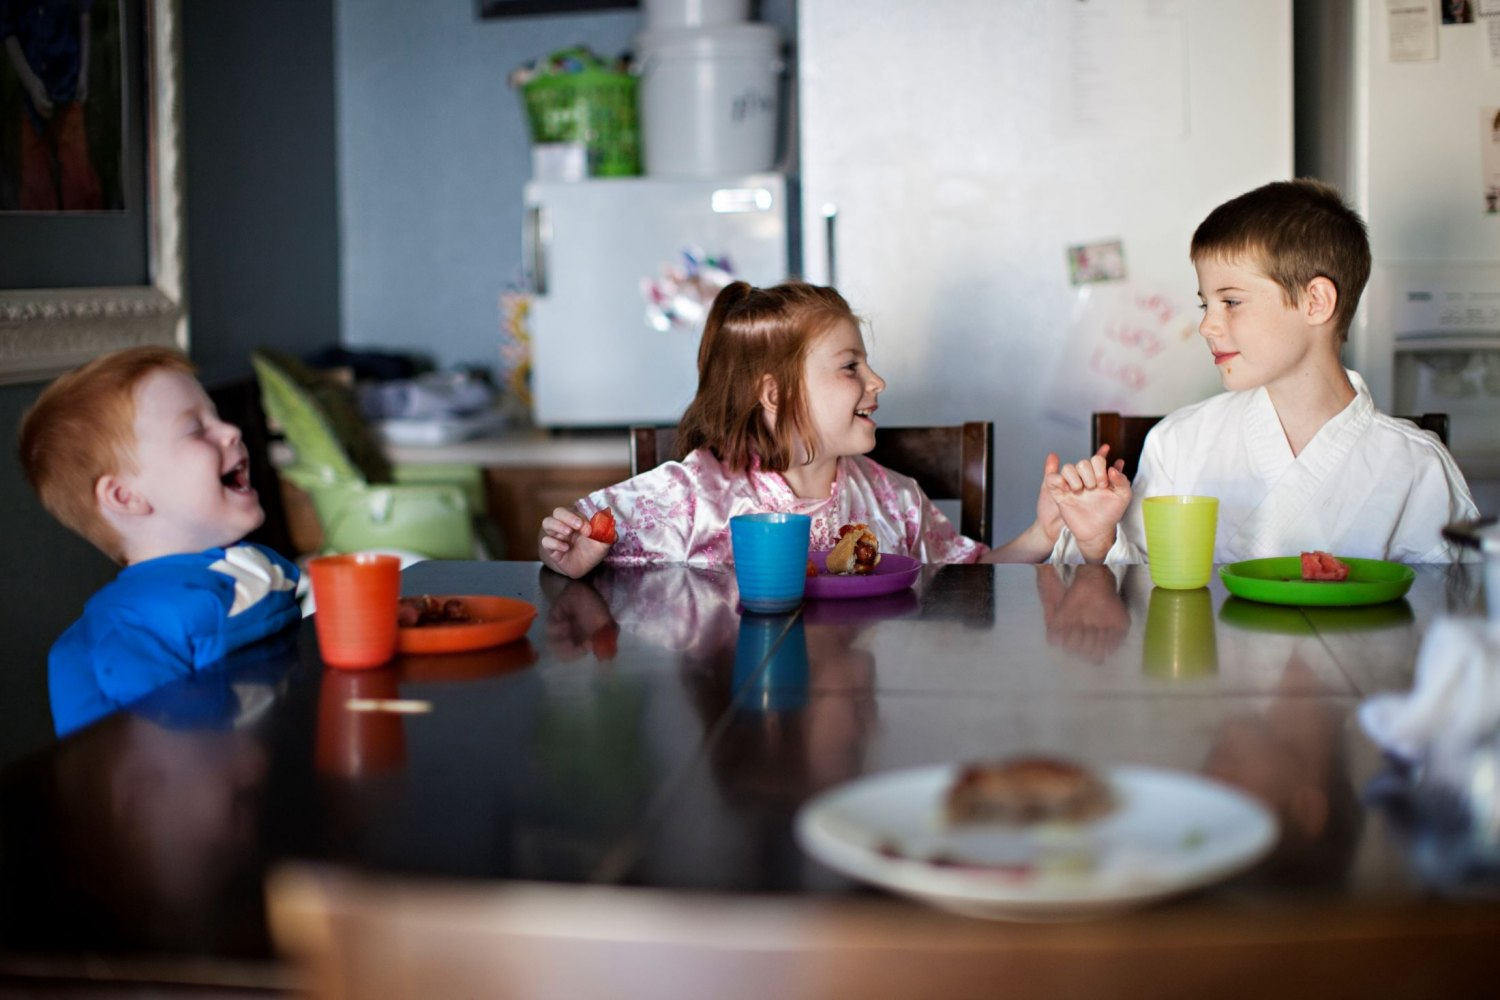 kids at a dining room table talking and smiling